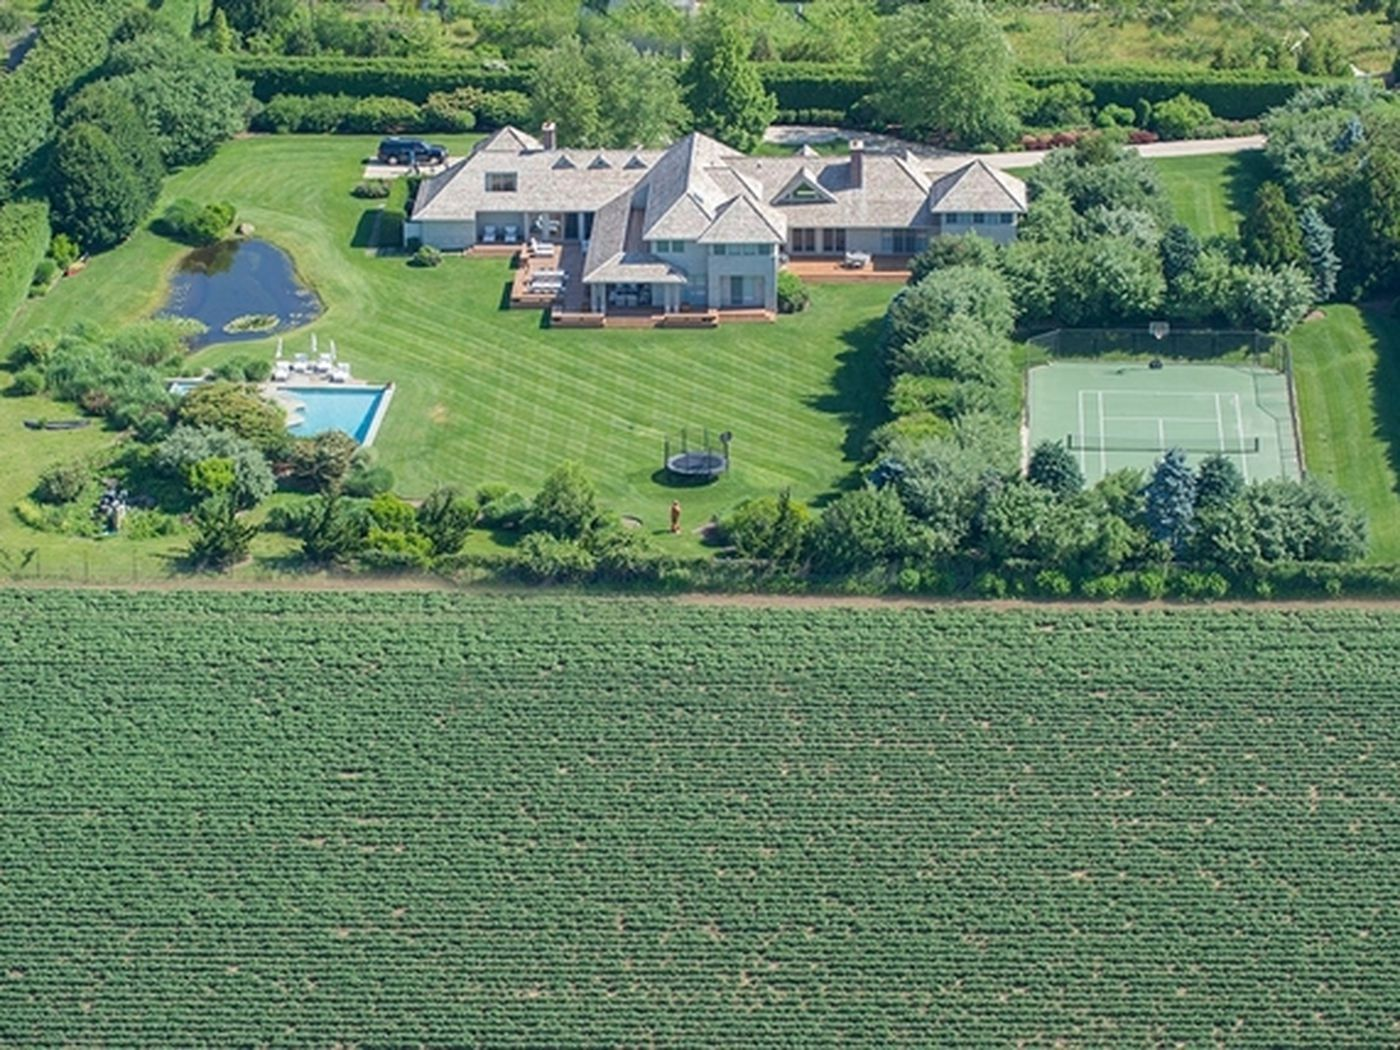 What's included in a new Sagaponack estate asking $16M? - Curbed Hamptons